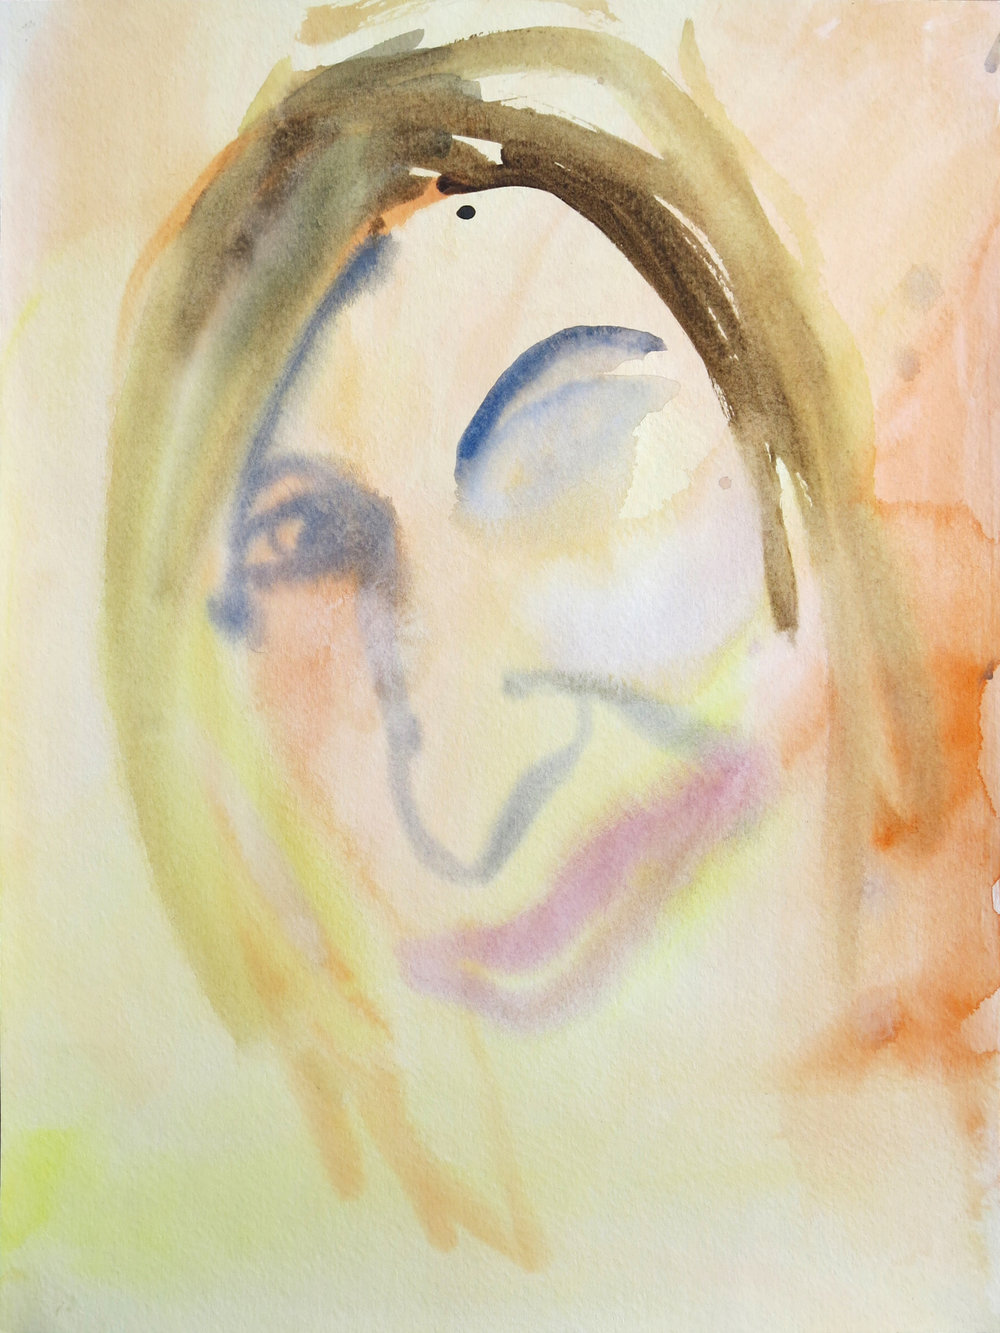 Copy of Barbra Streisand Portrait #136